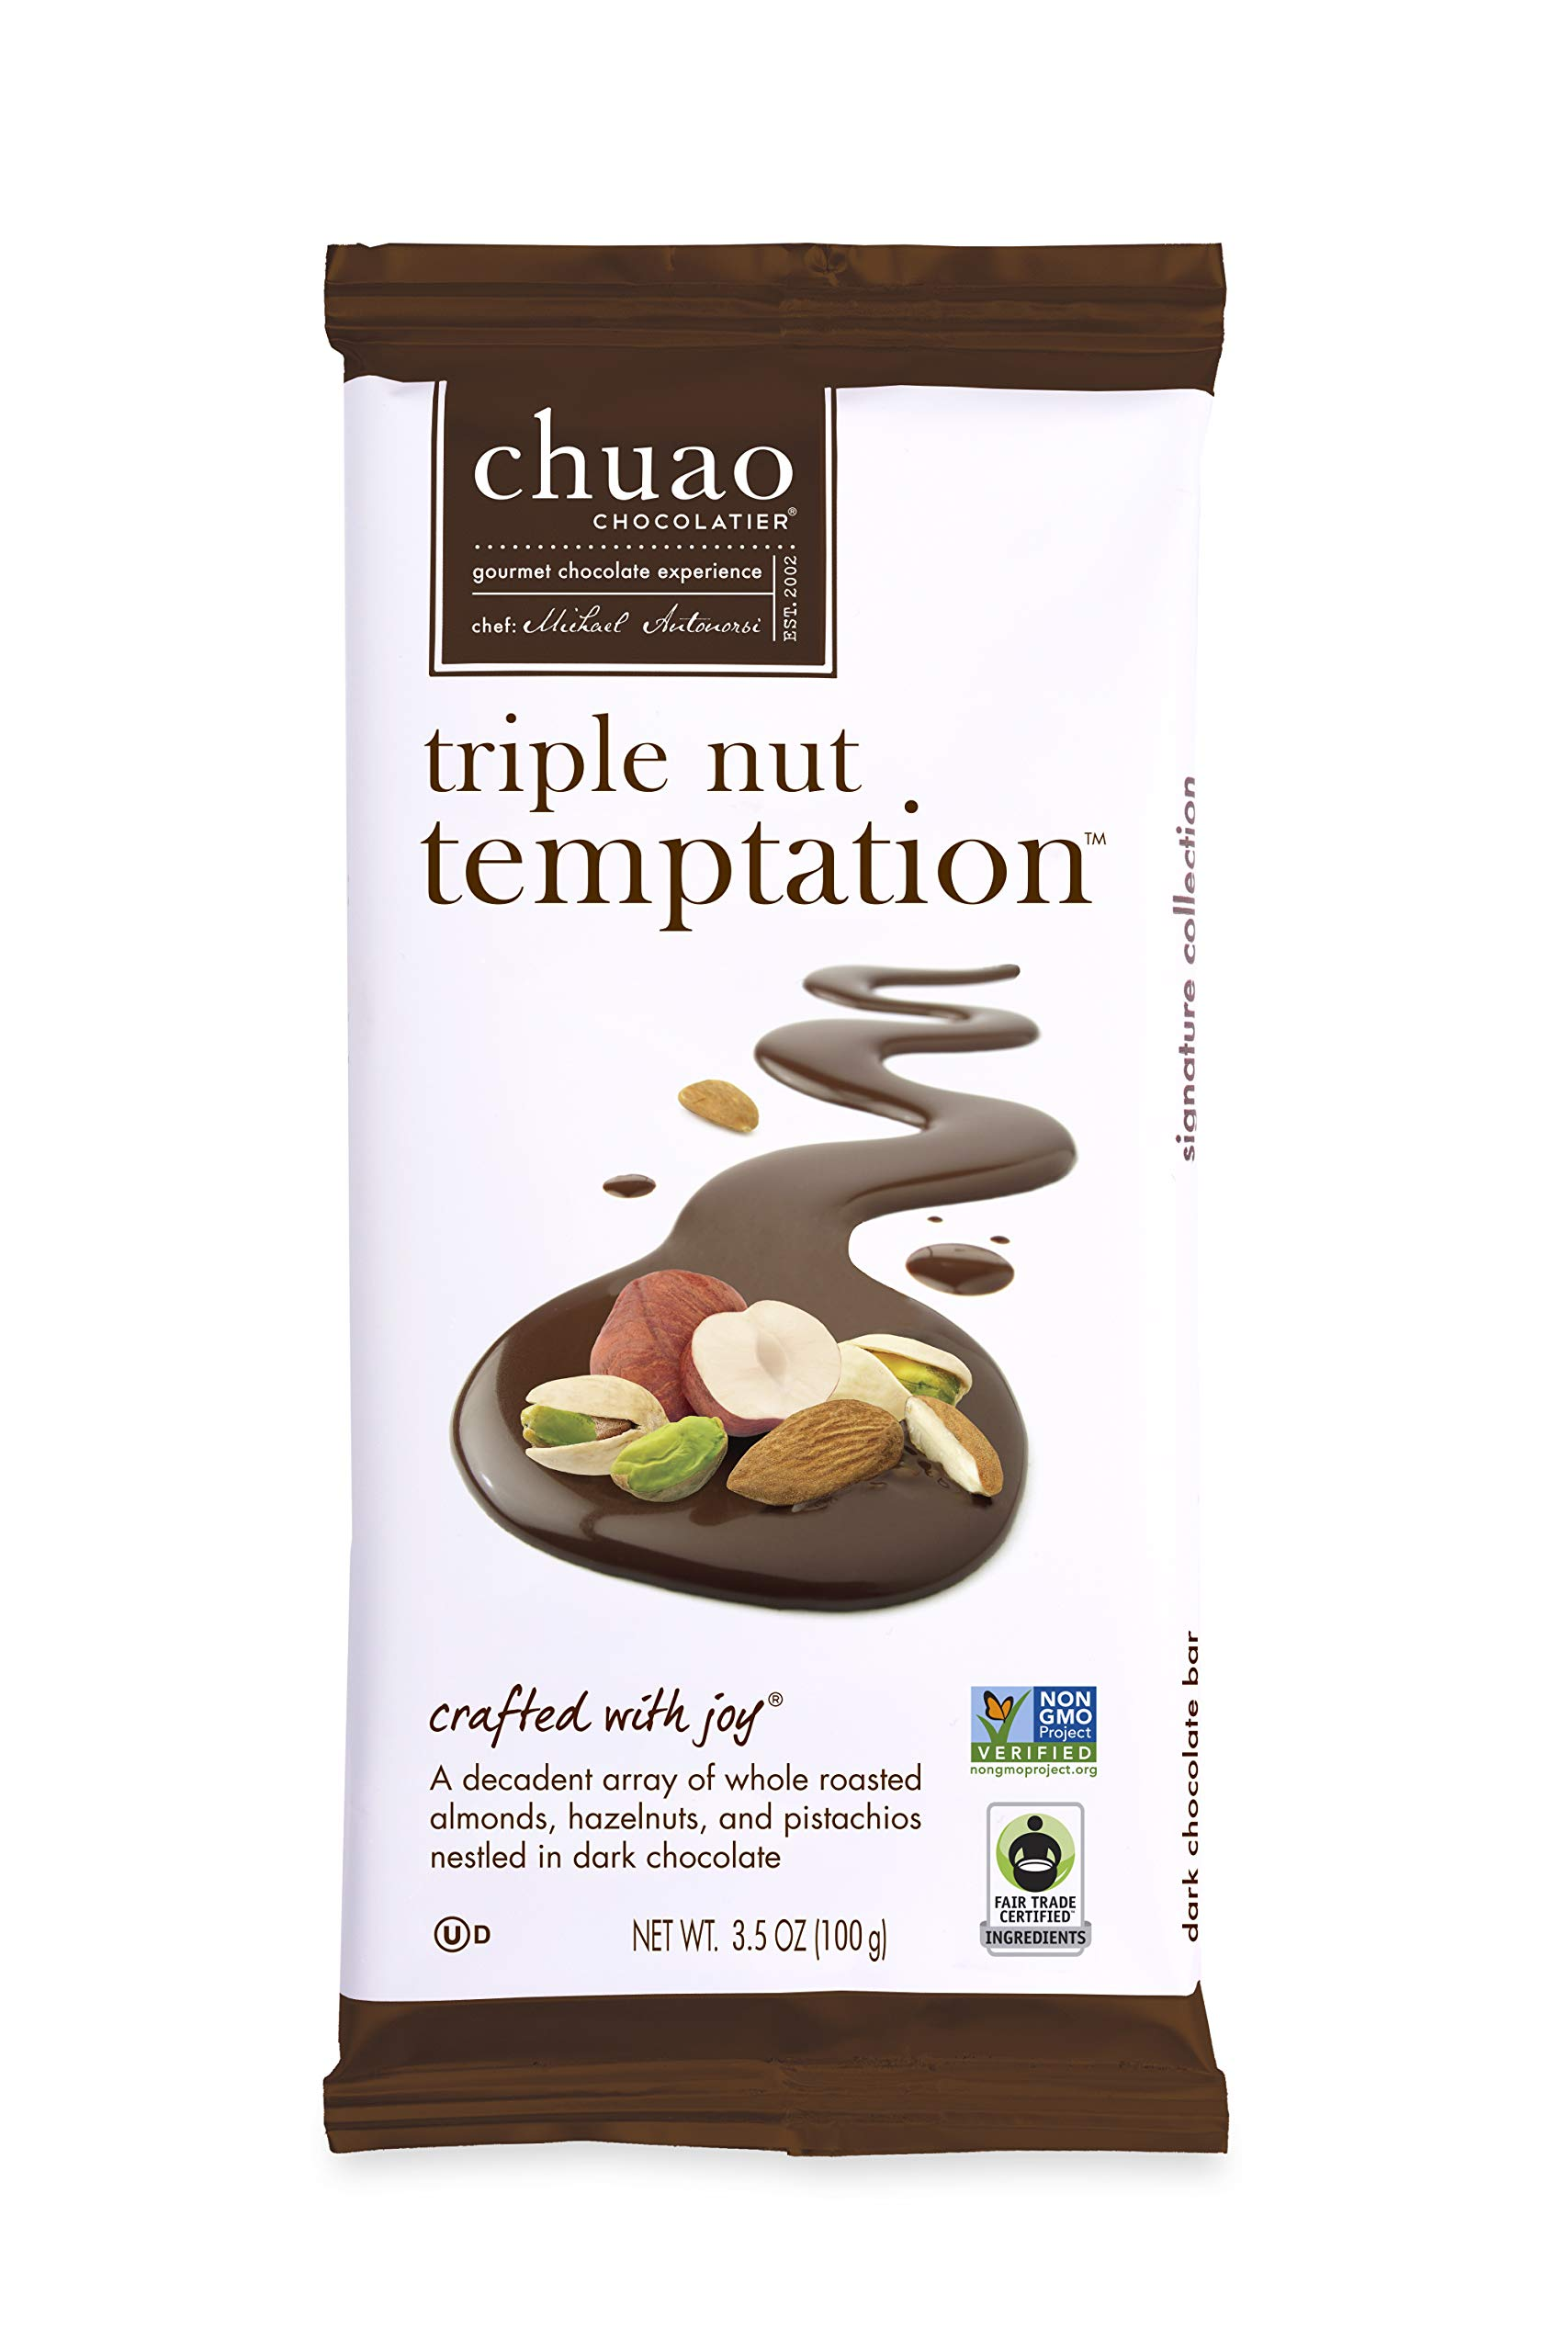 Chocolate Bars - Chuao Chocolatier Triple Nut Temptation Chocolate Bars 10pk (2.8 oz bars) - Best-Selling Chocolate Pack - Gourmet Artisan Dark Chocolate - Free of Artificial Flavors